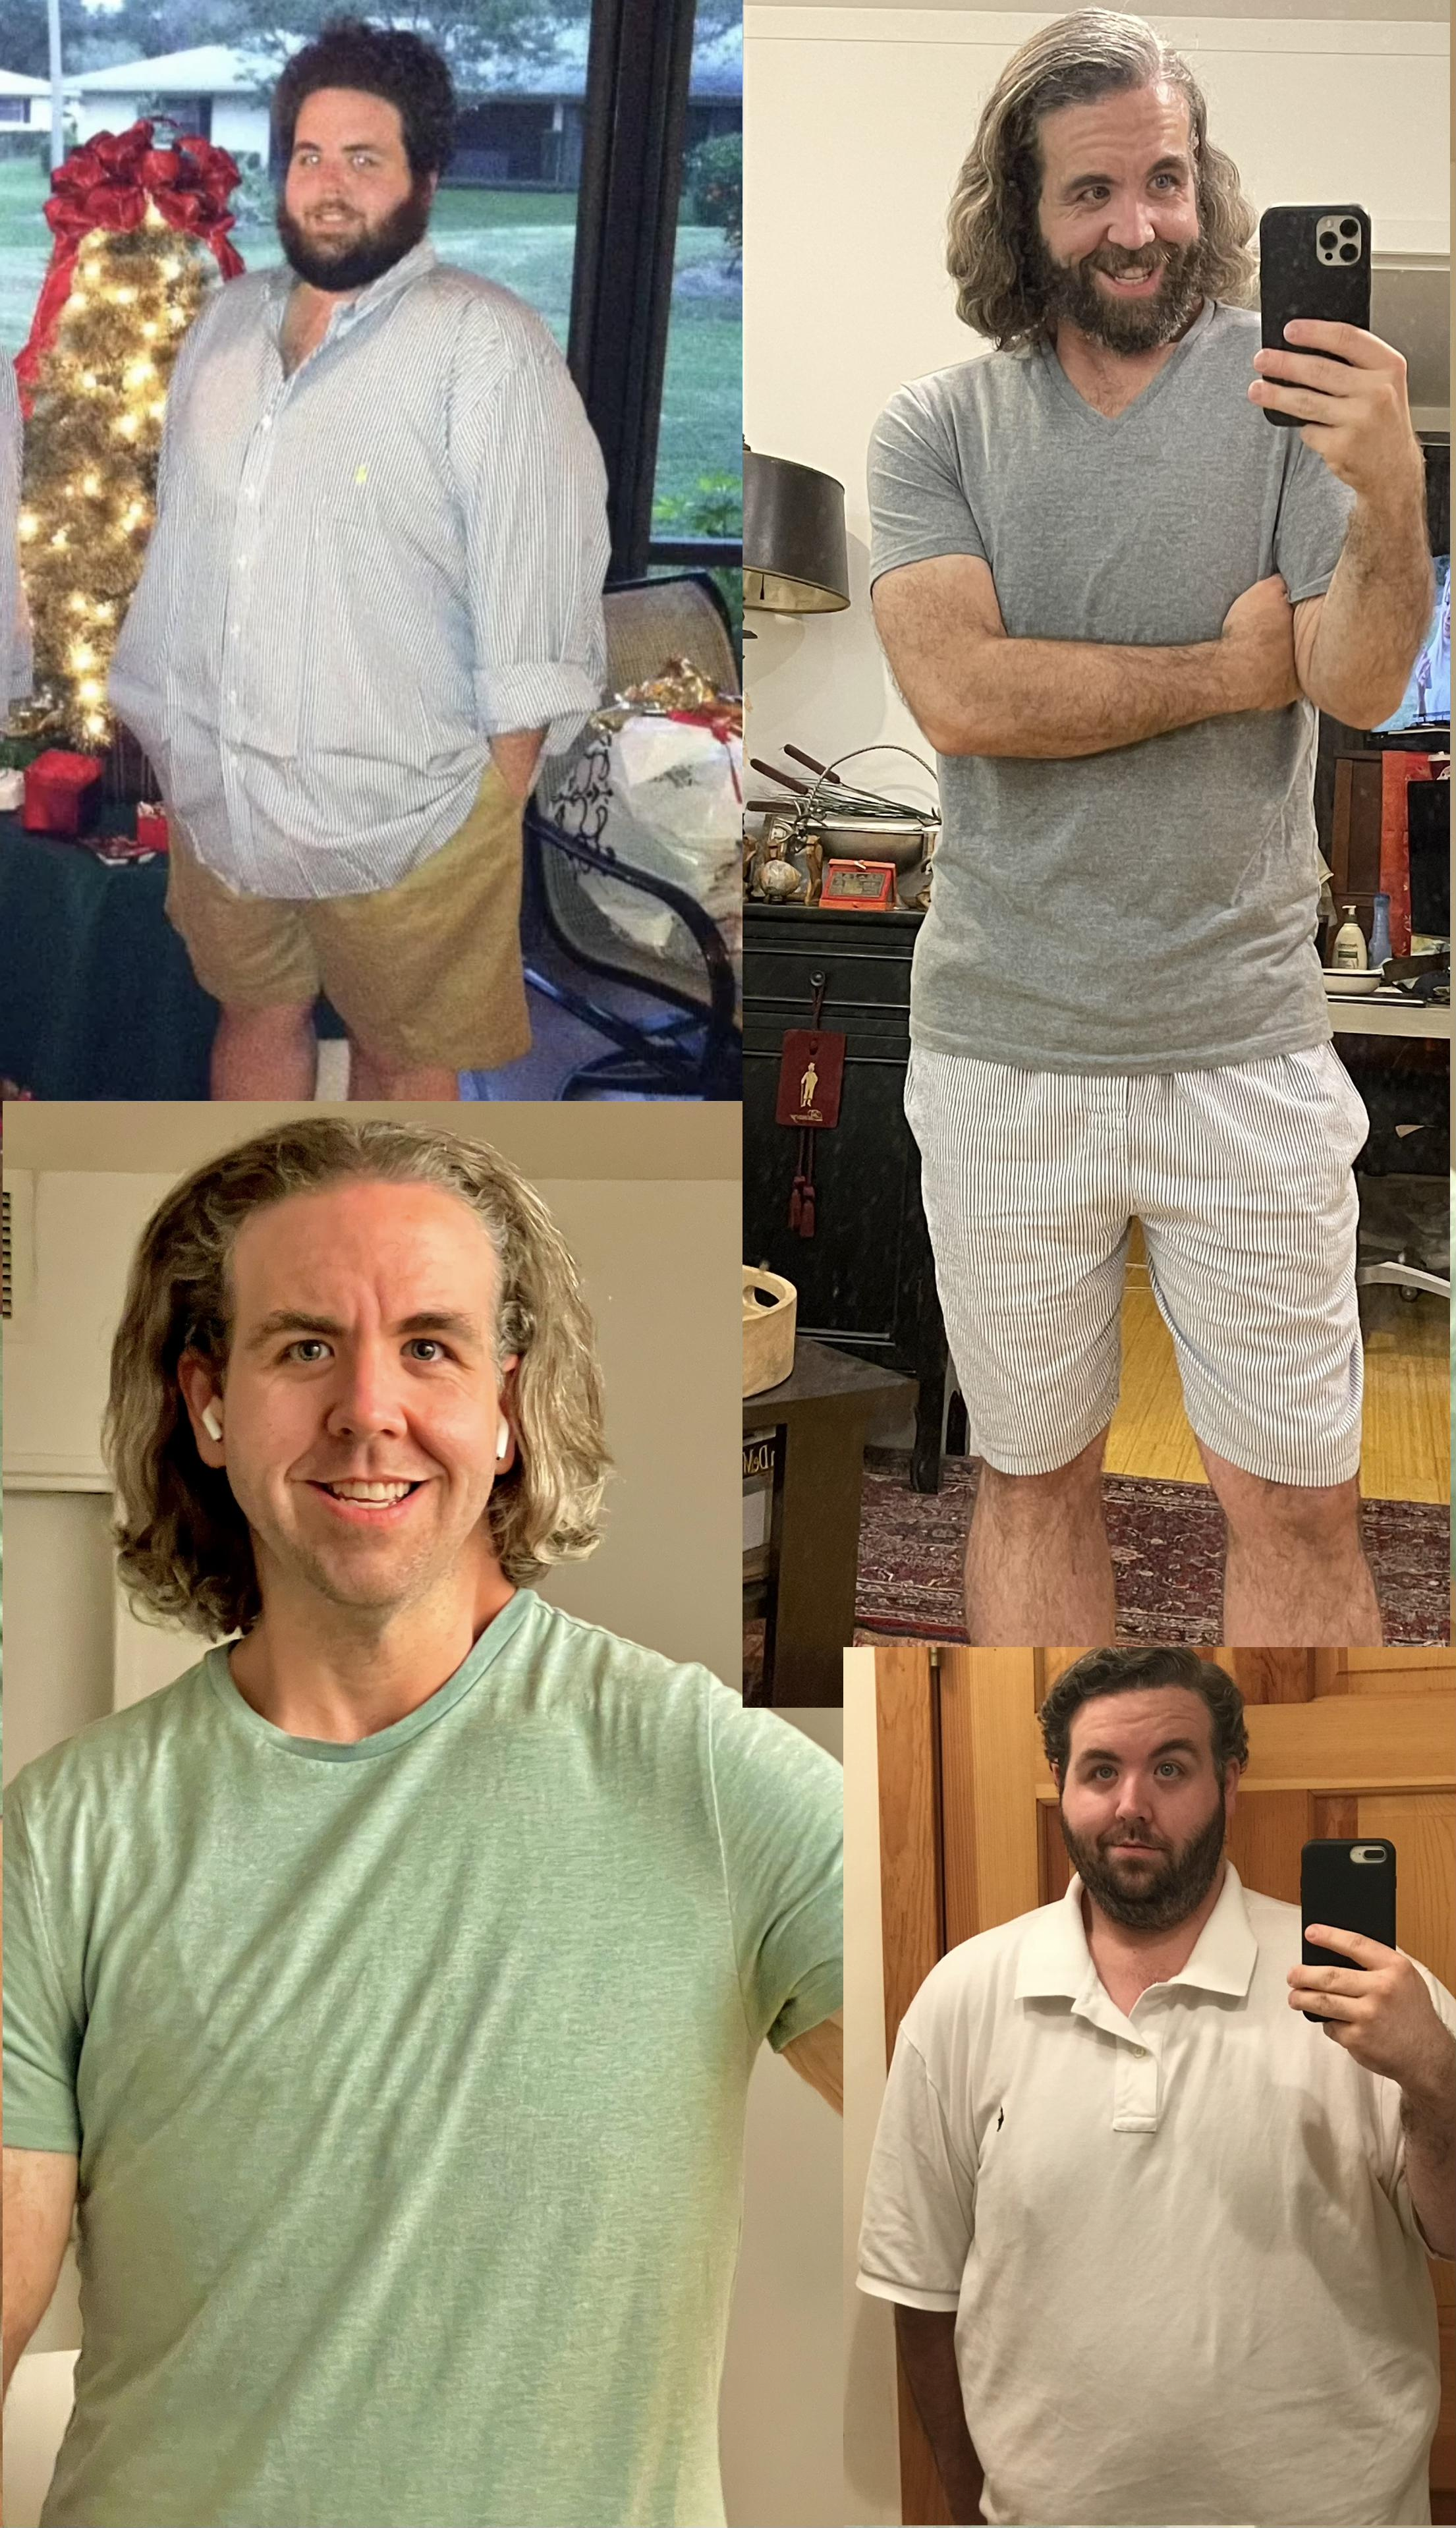 5 foot 11 Male Before and After 250 lbs Weight Loss 440 lbs to 190 lbs